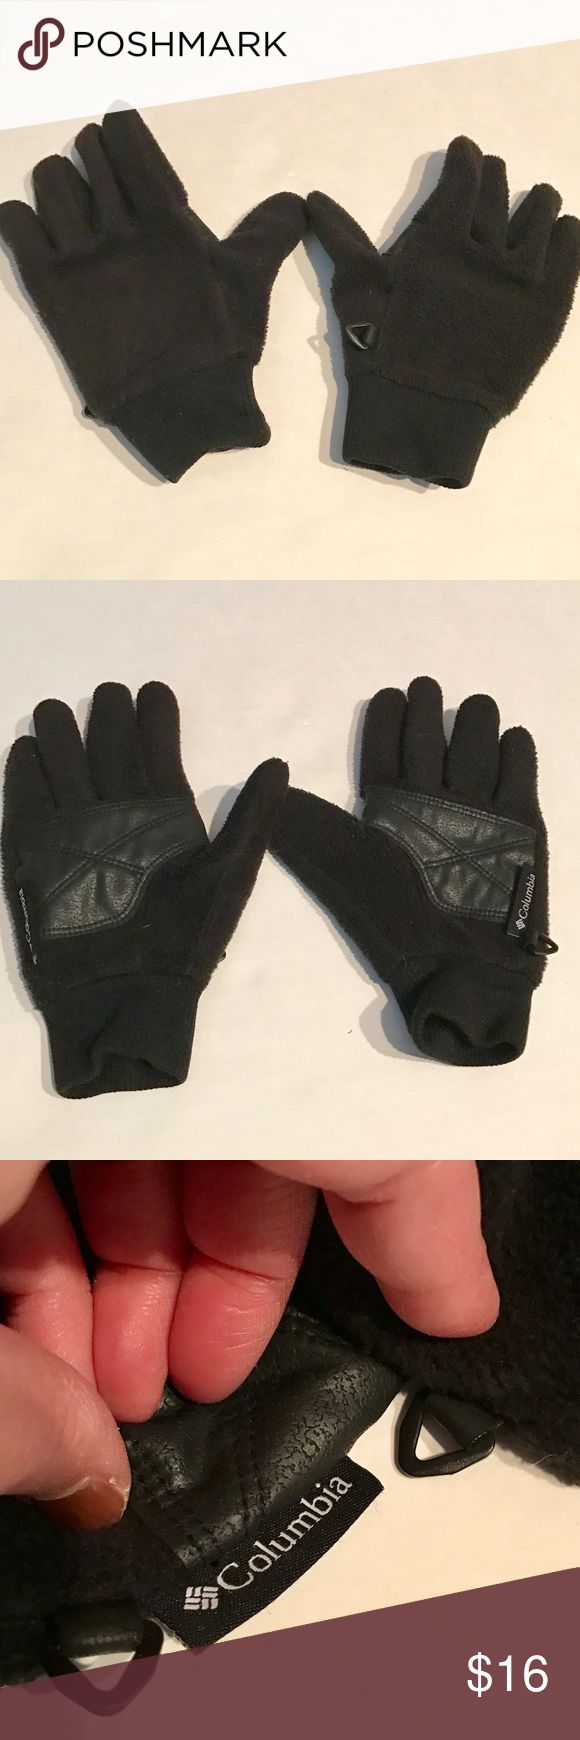 👫KIDS Columbia Gloves FINAL PRICE Black fleece gloves with non-slip palms. Hooks to either connect together with a carabiner or to add anything you want so your kids don't lose them. Gender neutral. Great condition Columbia Accessories Mittens